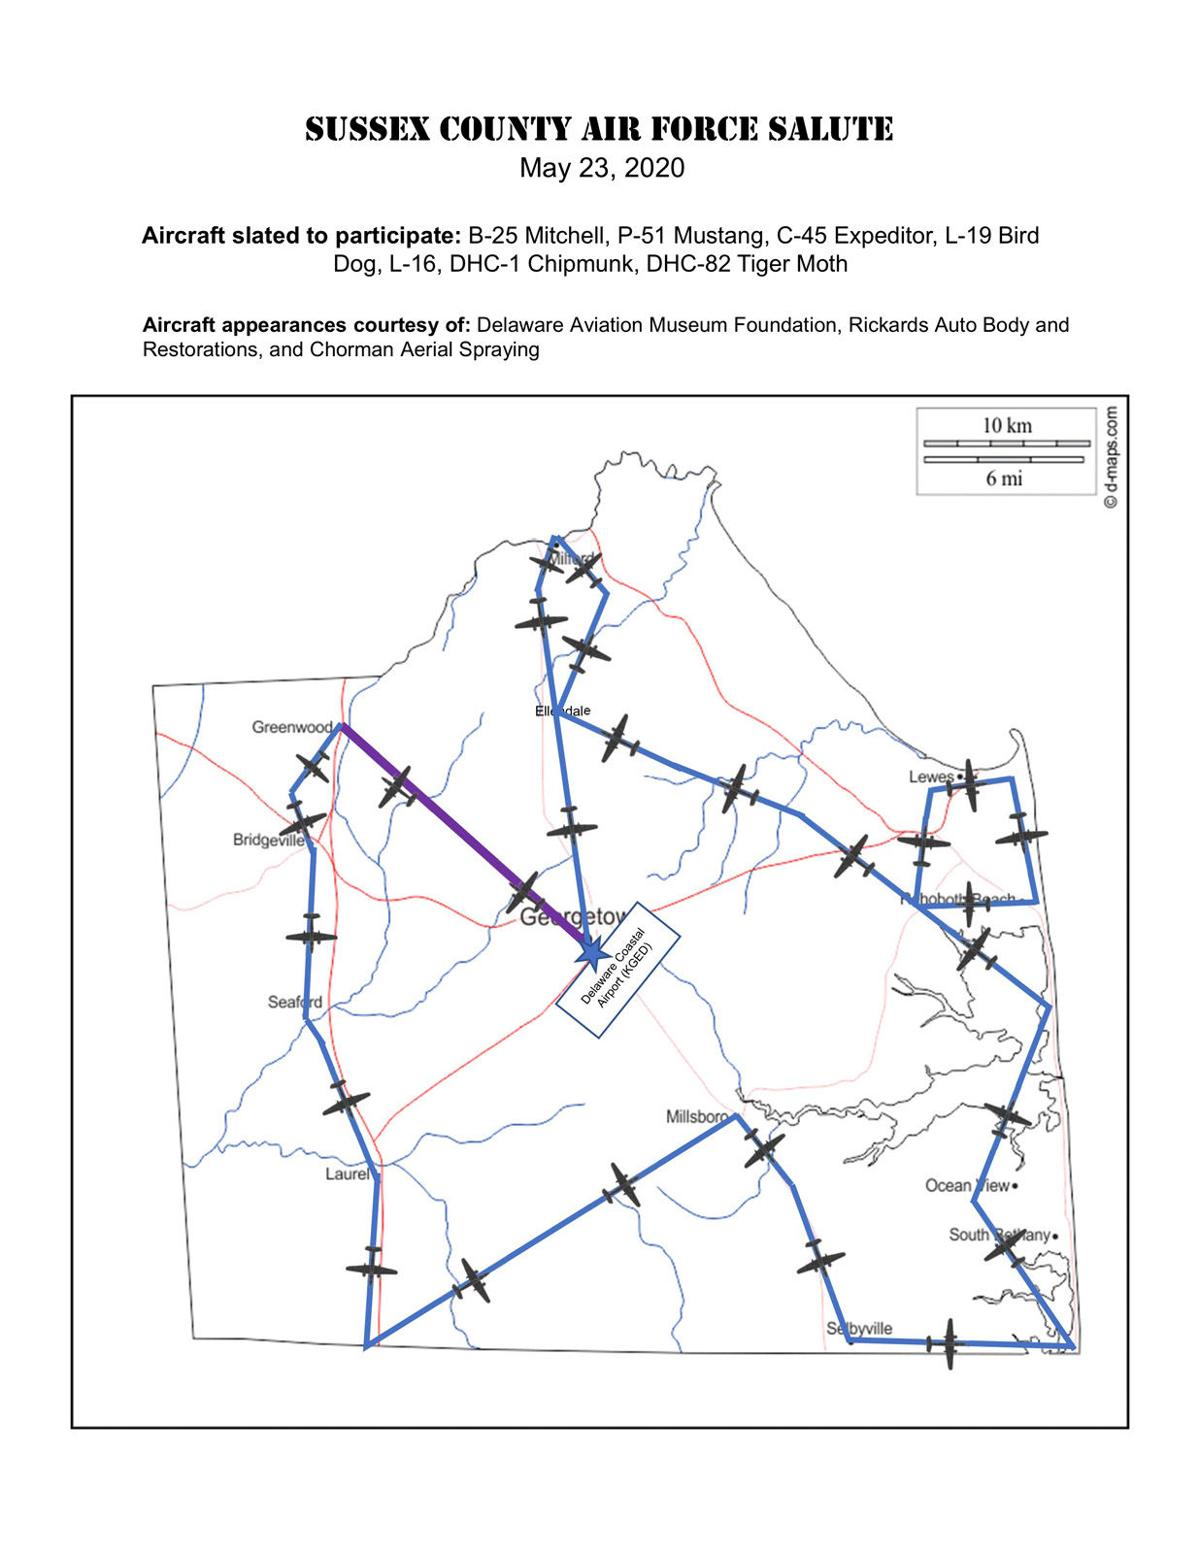 Sussex County Air Force Salute route map